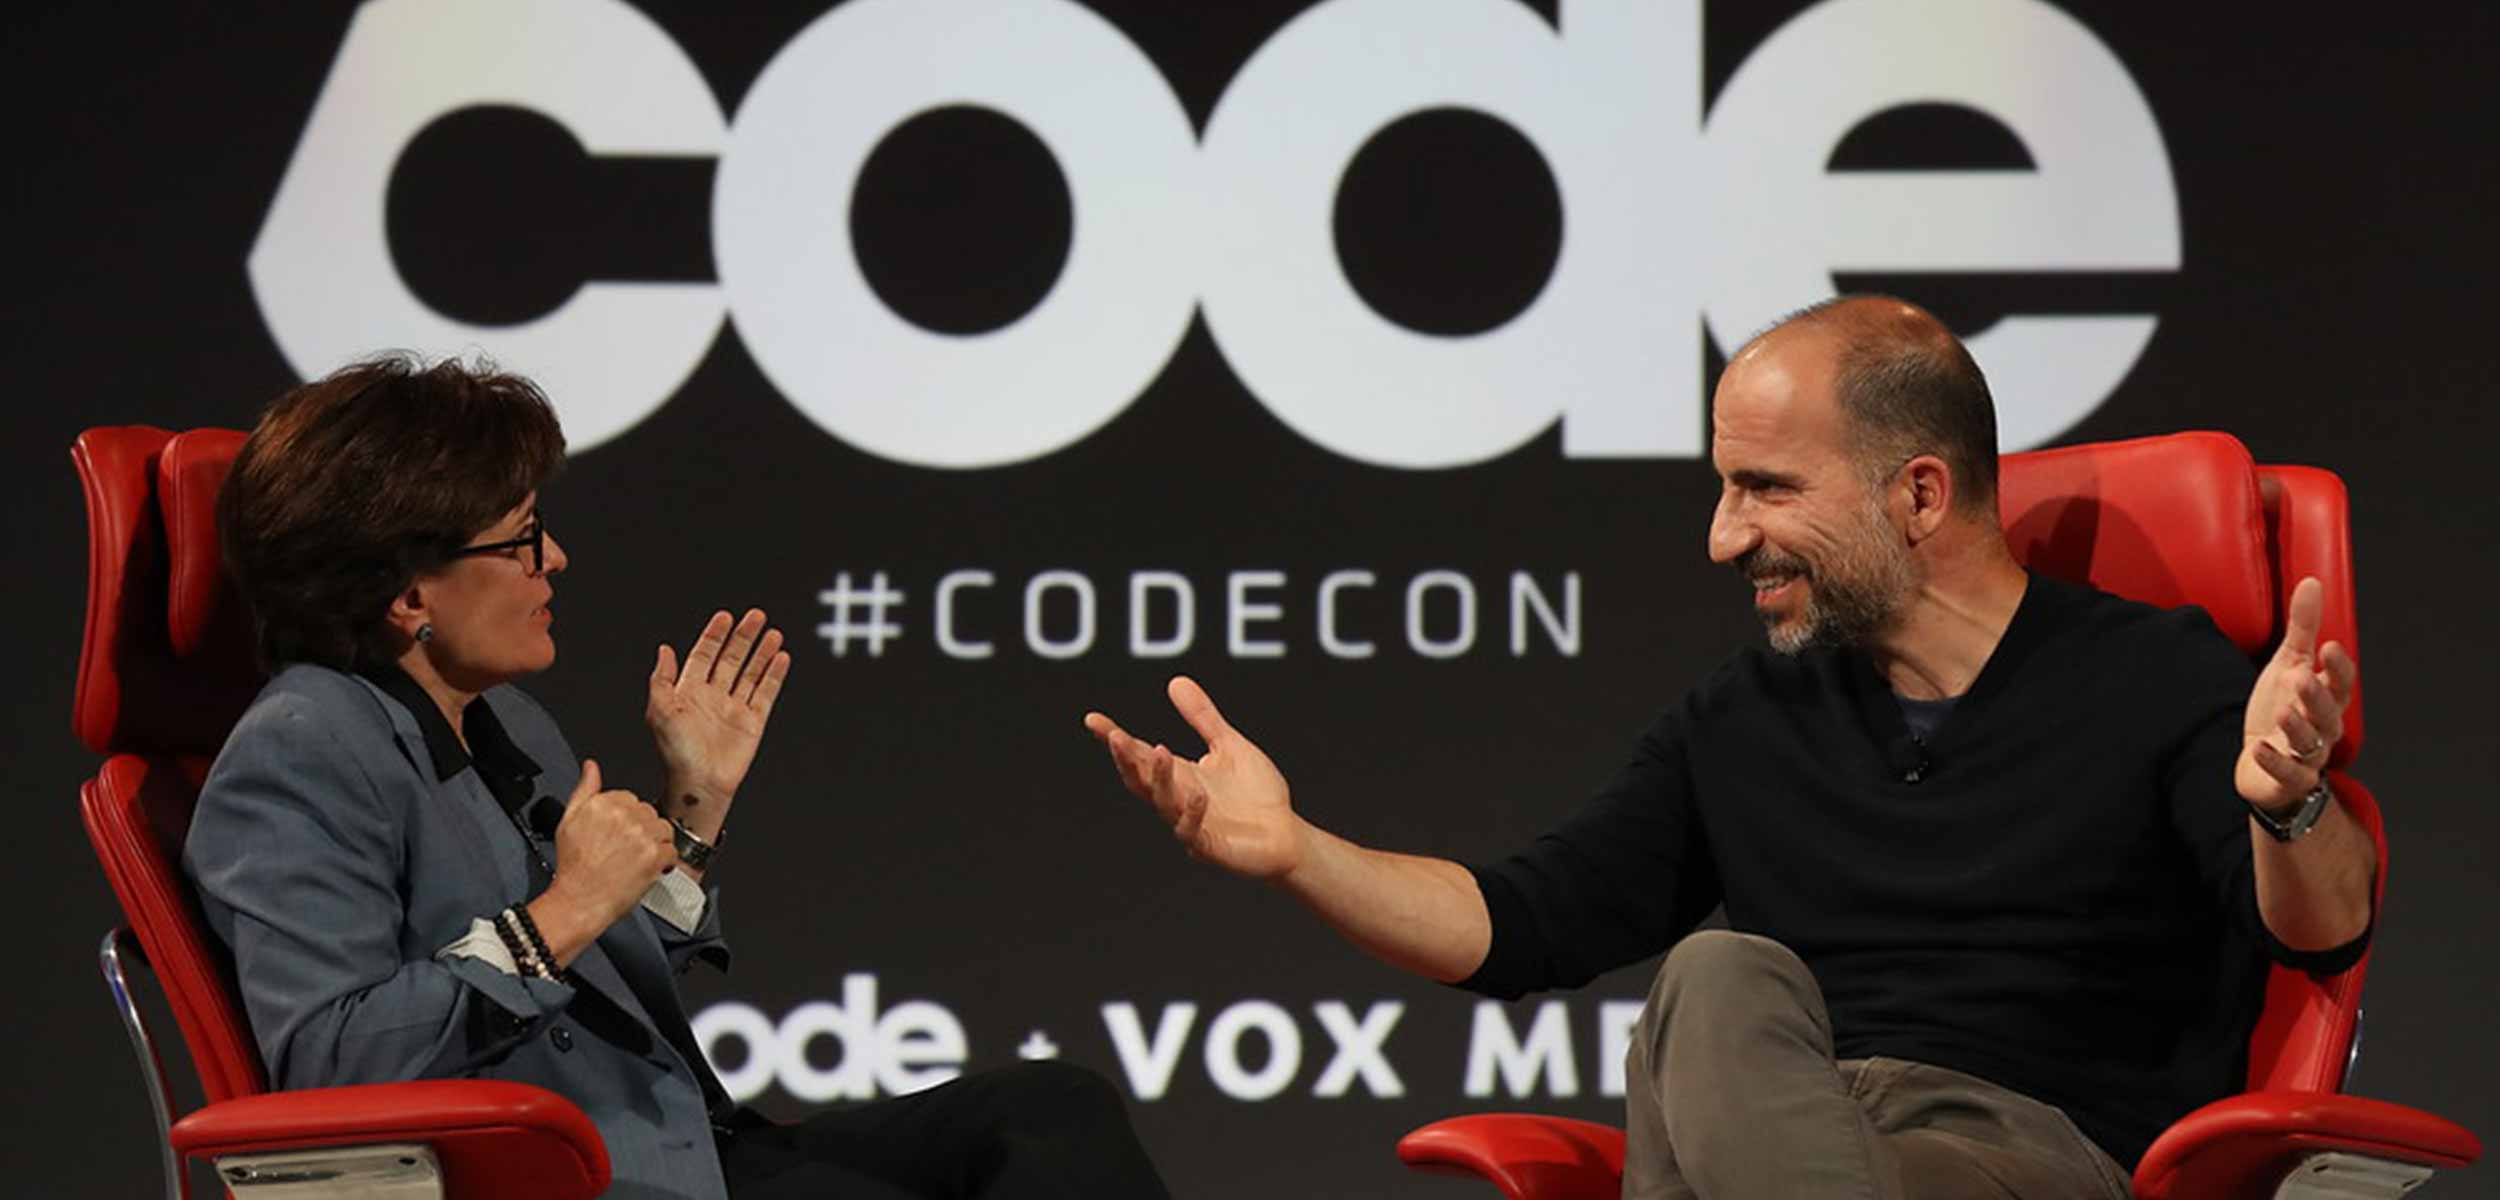 Kara Swisher and Scott Galloway on stage at Code Conference